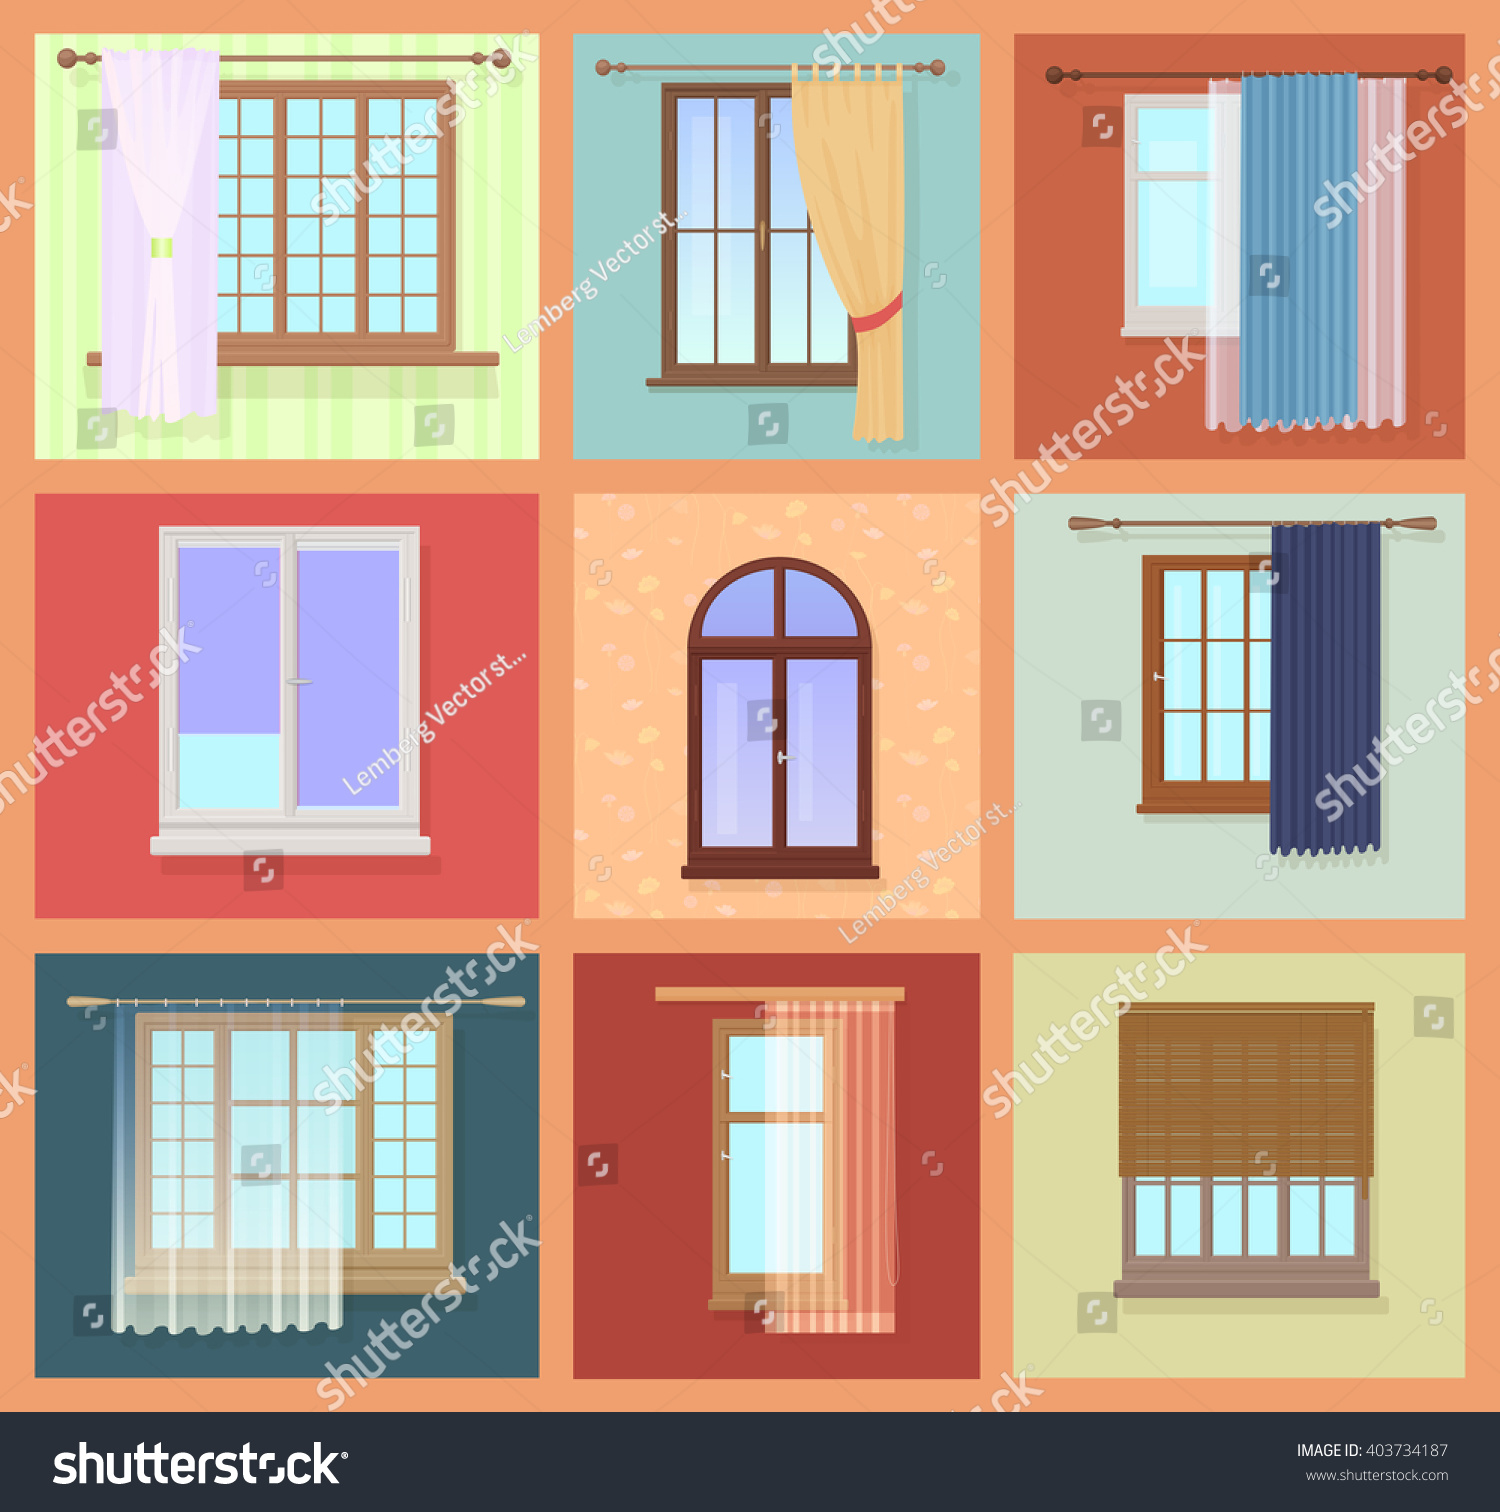 Set high quality various vintage windows stock vector for Quality windows